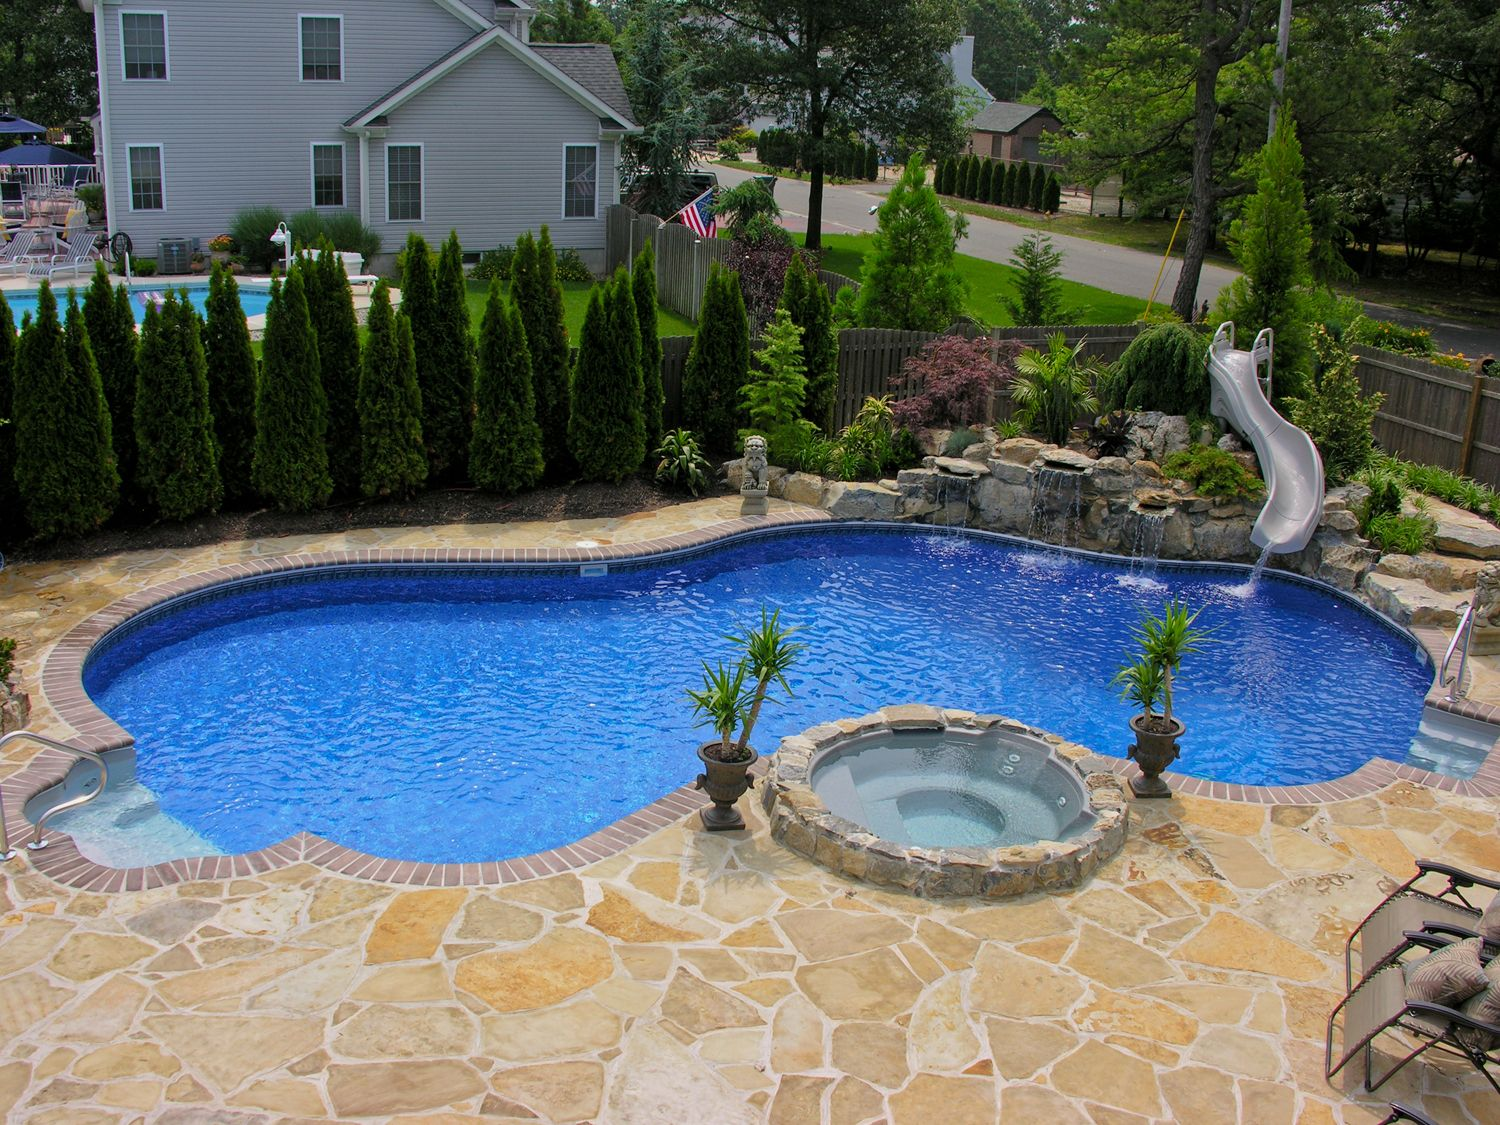 Pool town nj inground swimming pools with spa and slide for Swimming pool spa designs